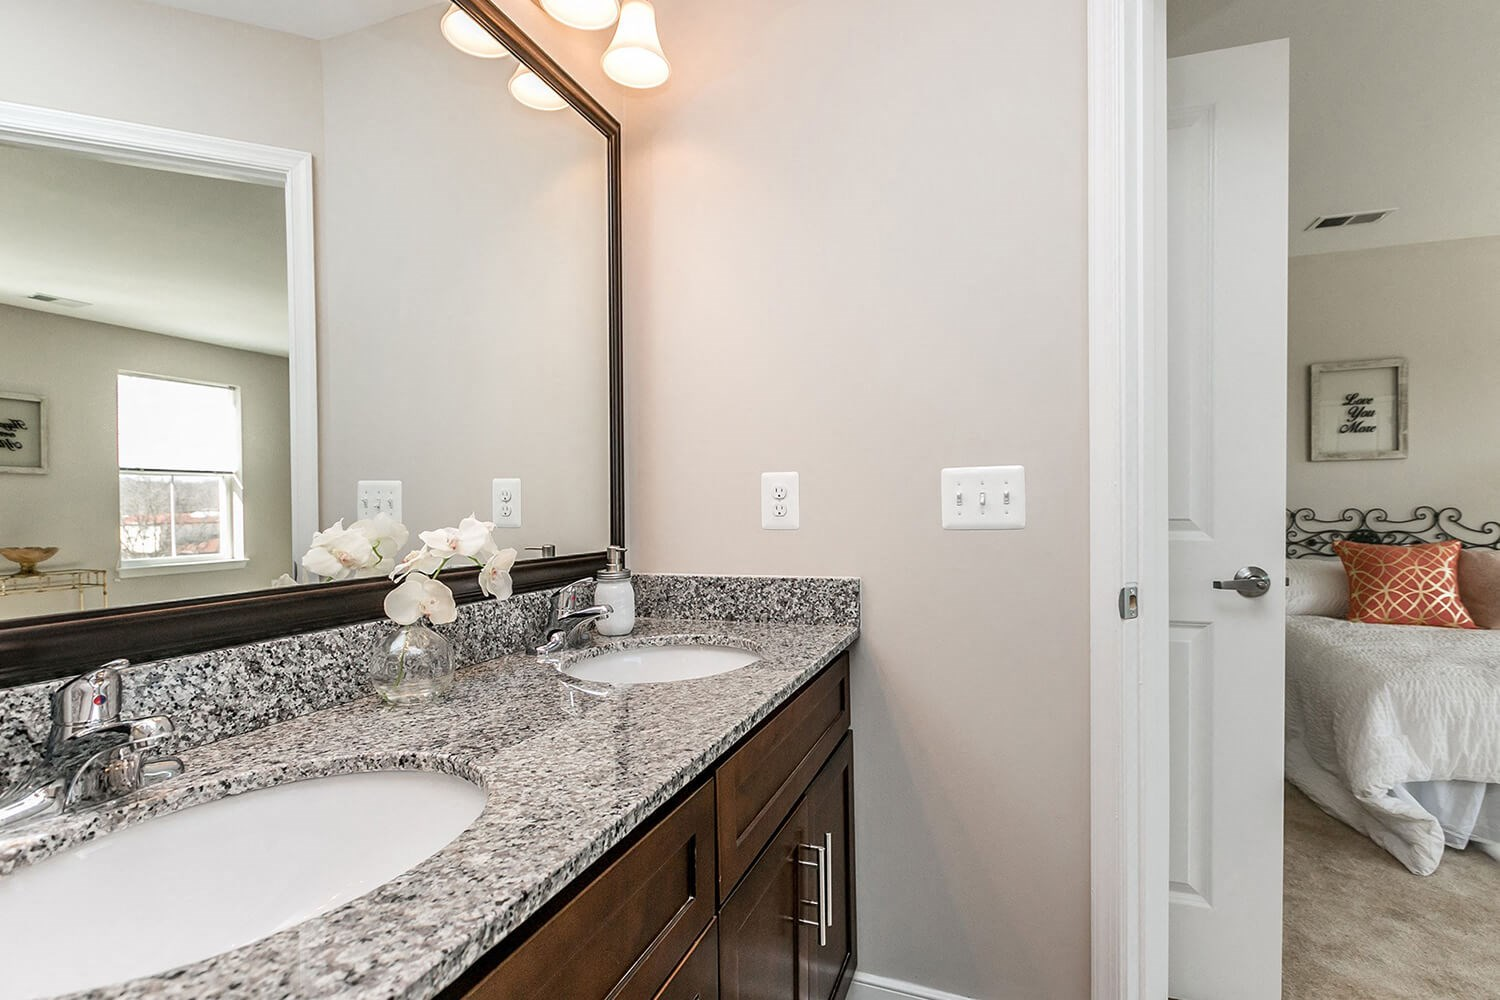 Master Bedroom with Ensuite Spa-inspired bathrooms at Townes at Pine Orchard, Ellicott City, MD 21042